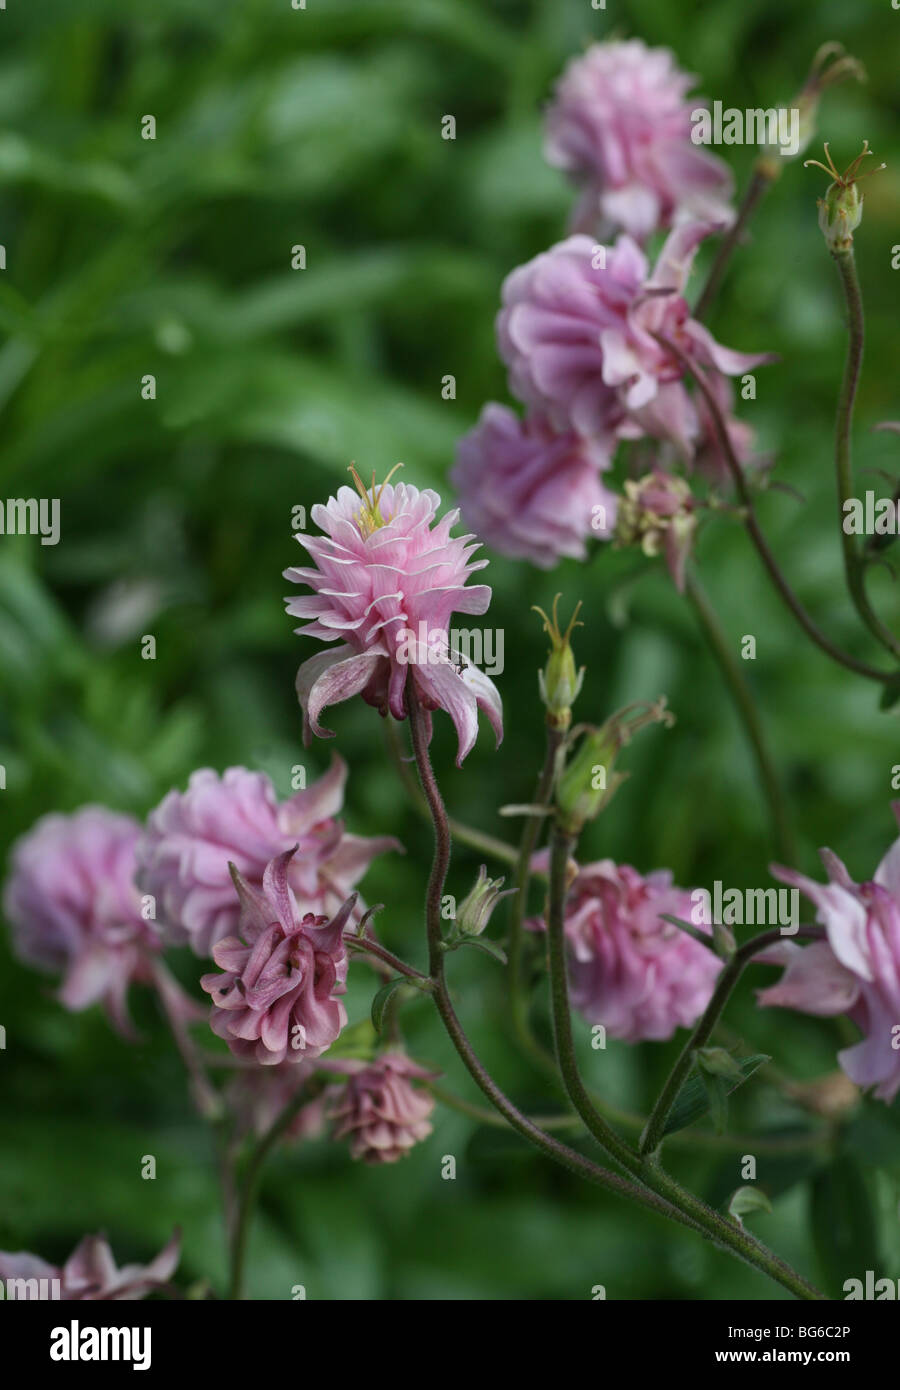 Close Up Of A Red Pink Clover Flower Trifolium Pratense Stock Photo